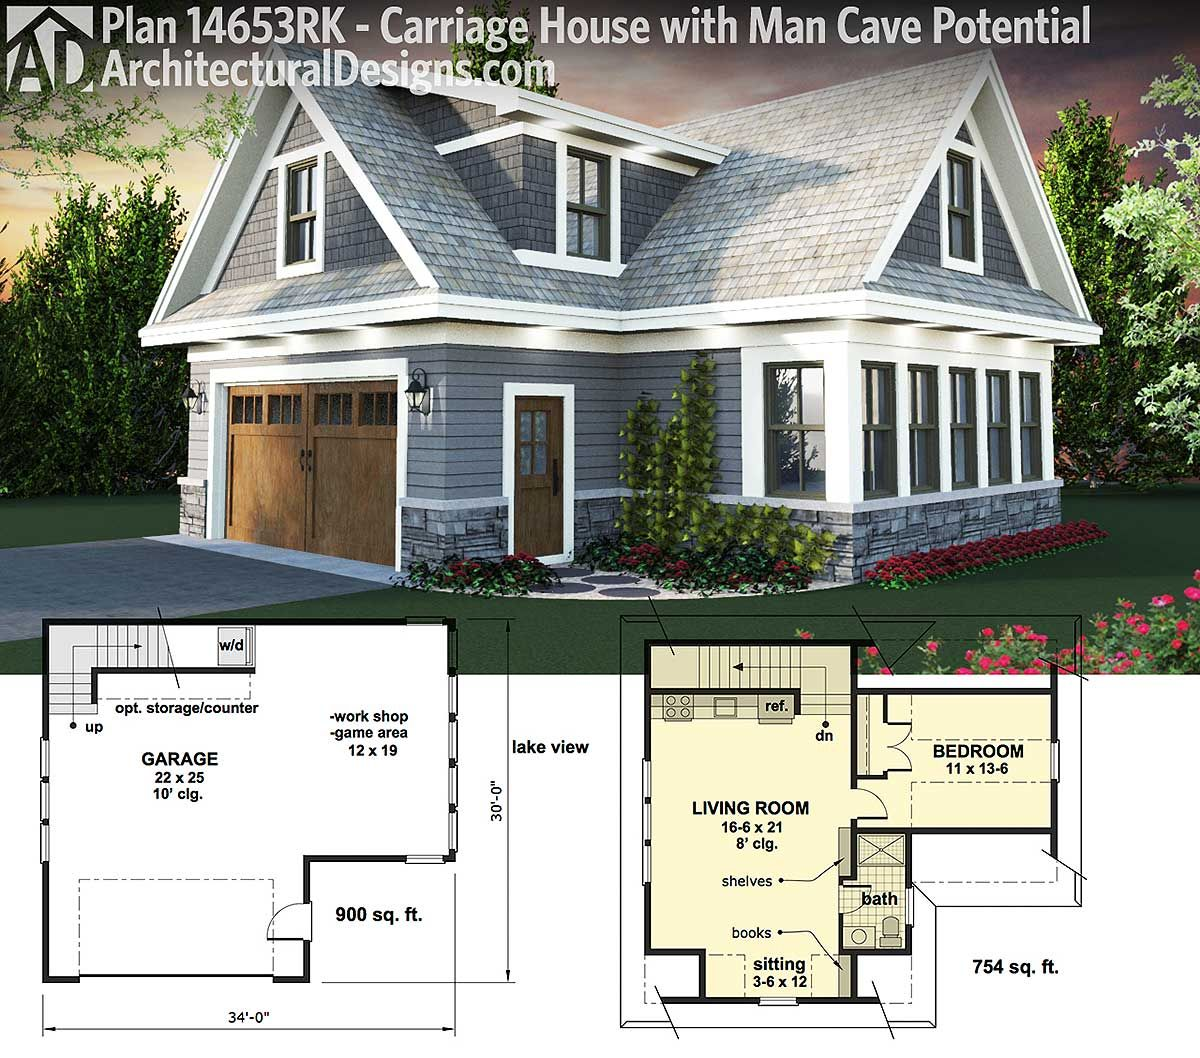 Plan 14653rk carriage house plan with man cave potential for Garage guest house plans